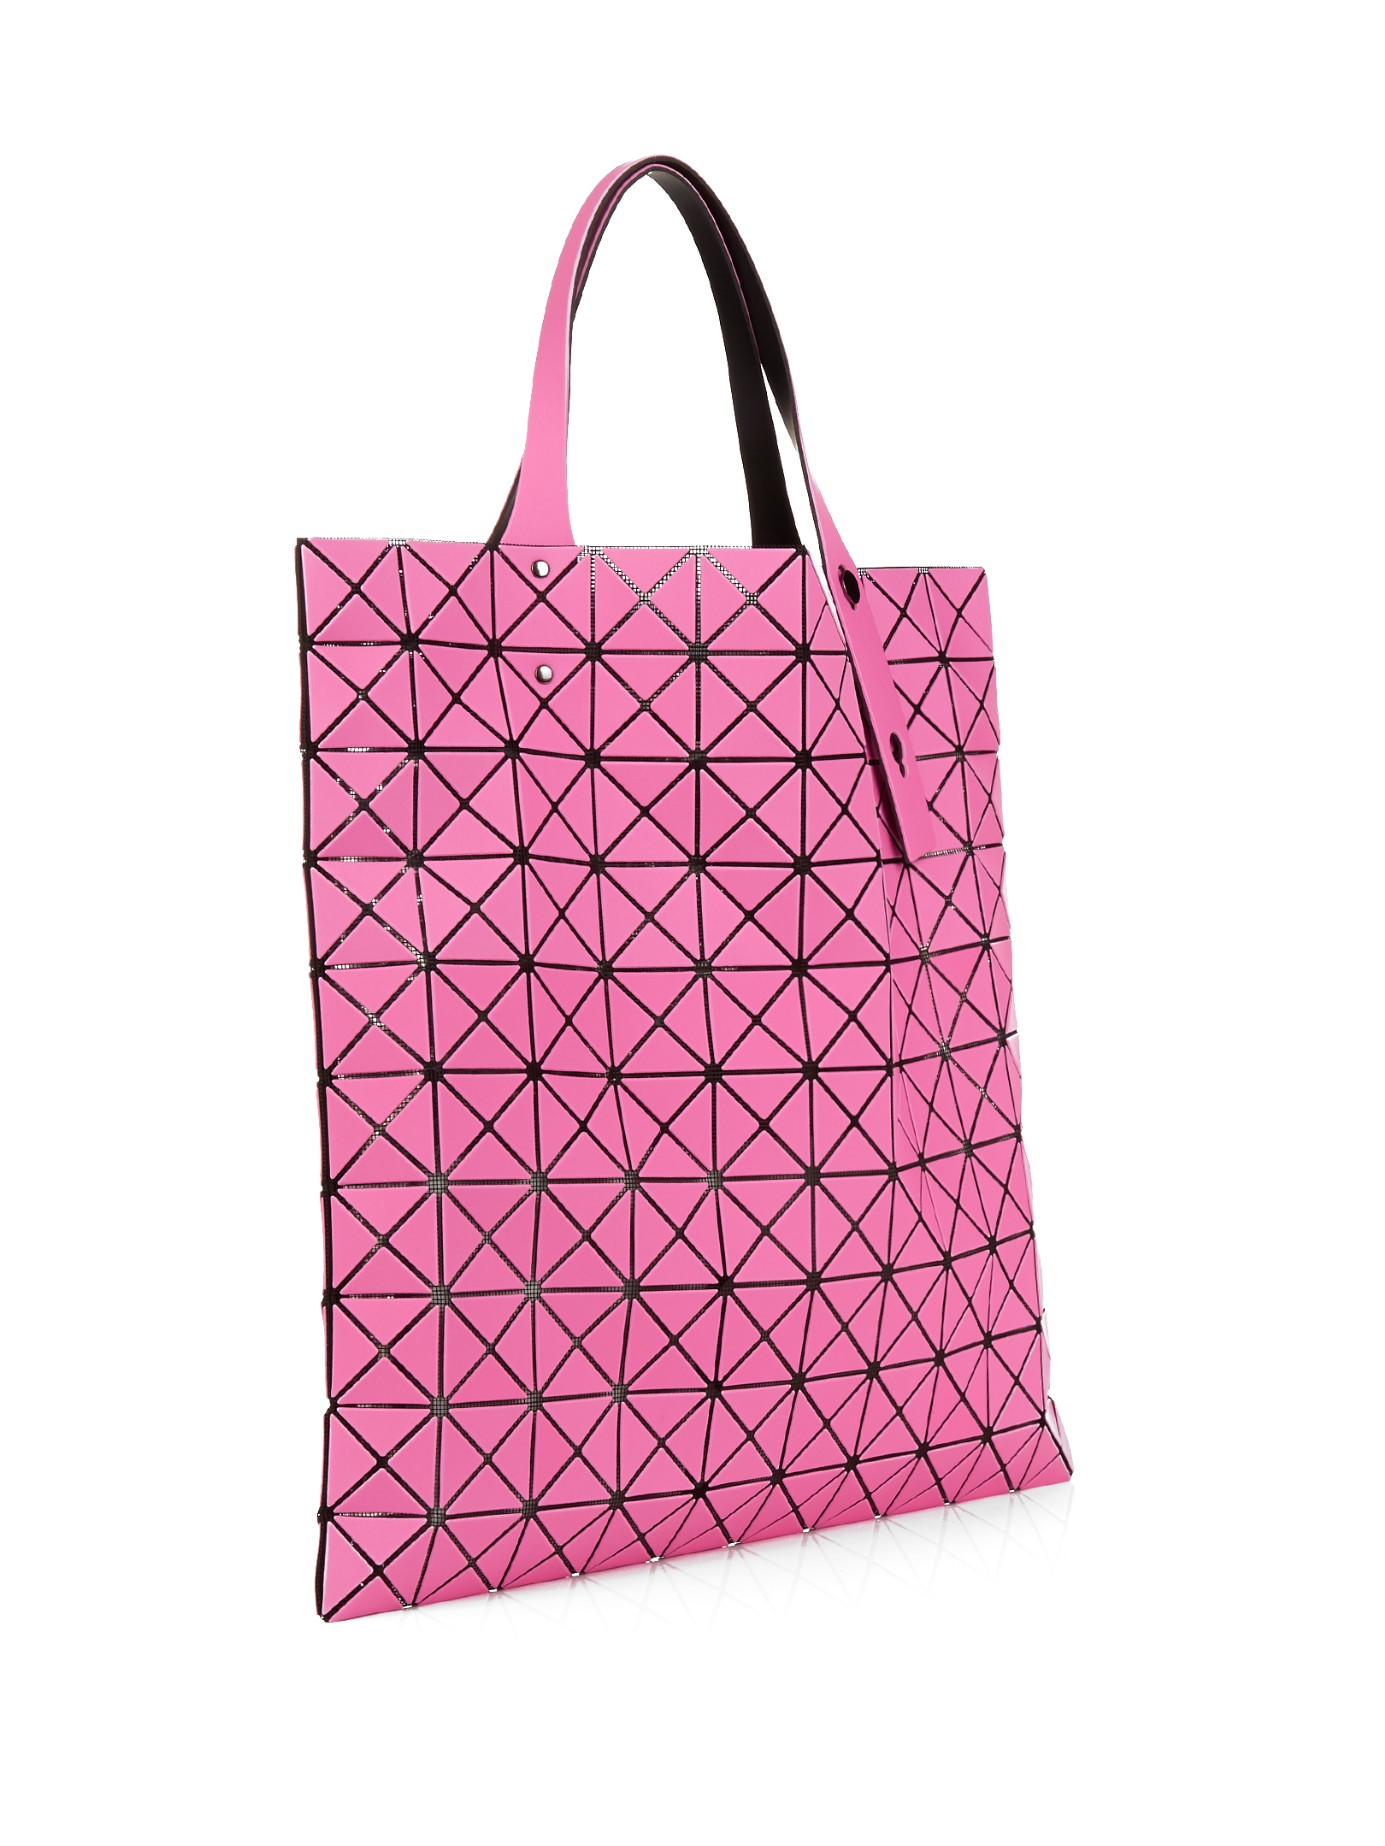 Lyst - Bao Bao Issey Miyake Prism 2 Matte Tote in Pink 4751a9dd6ef93